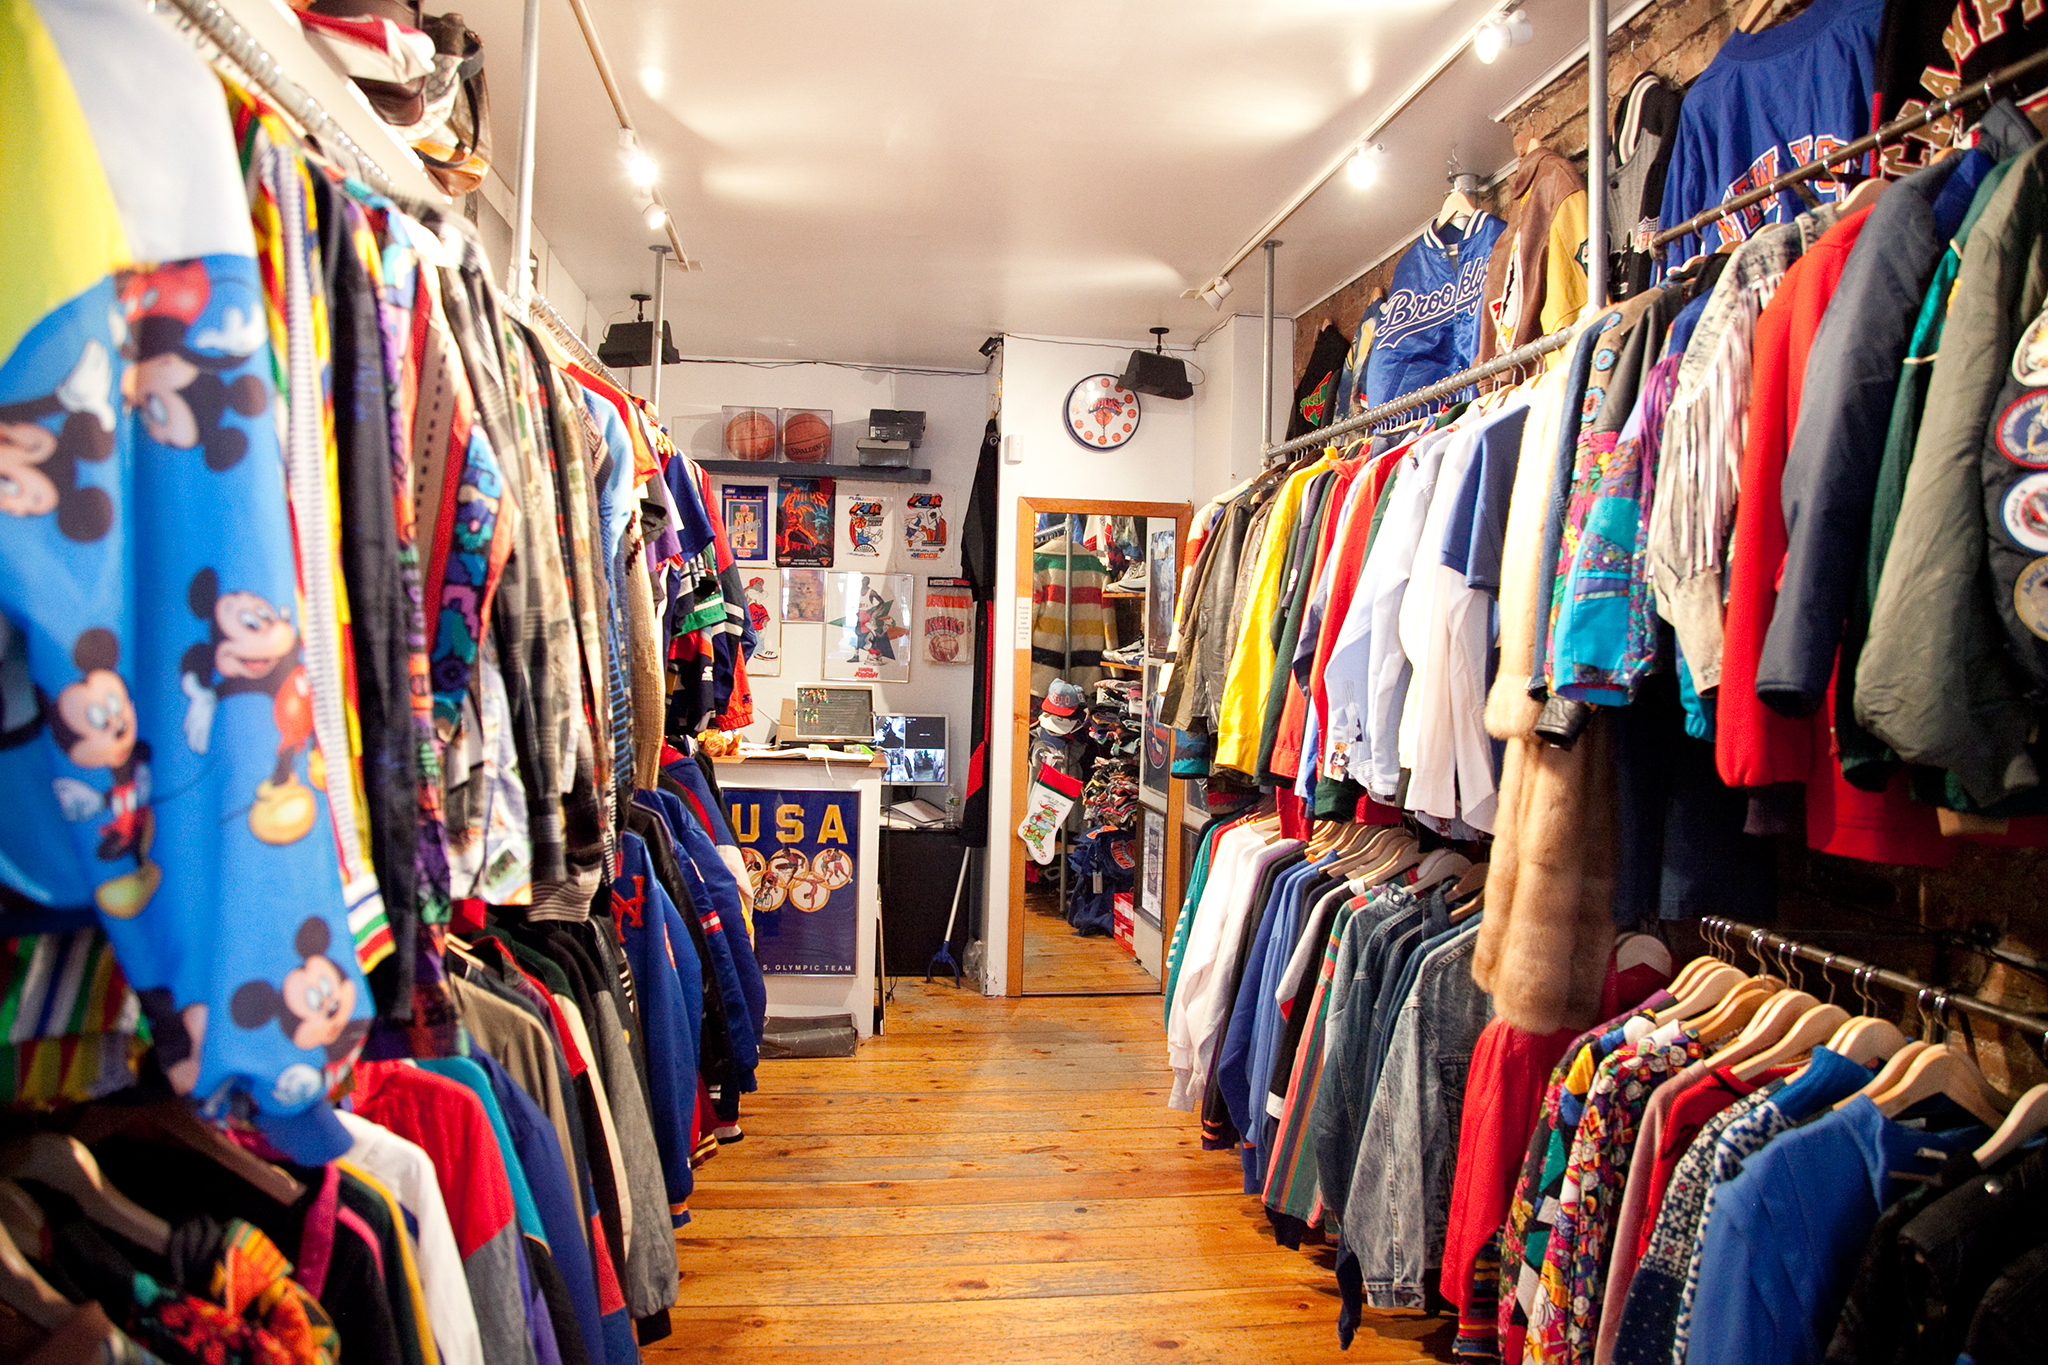 Clothing stores in harlem new york